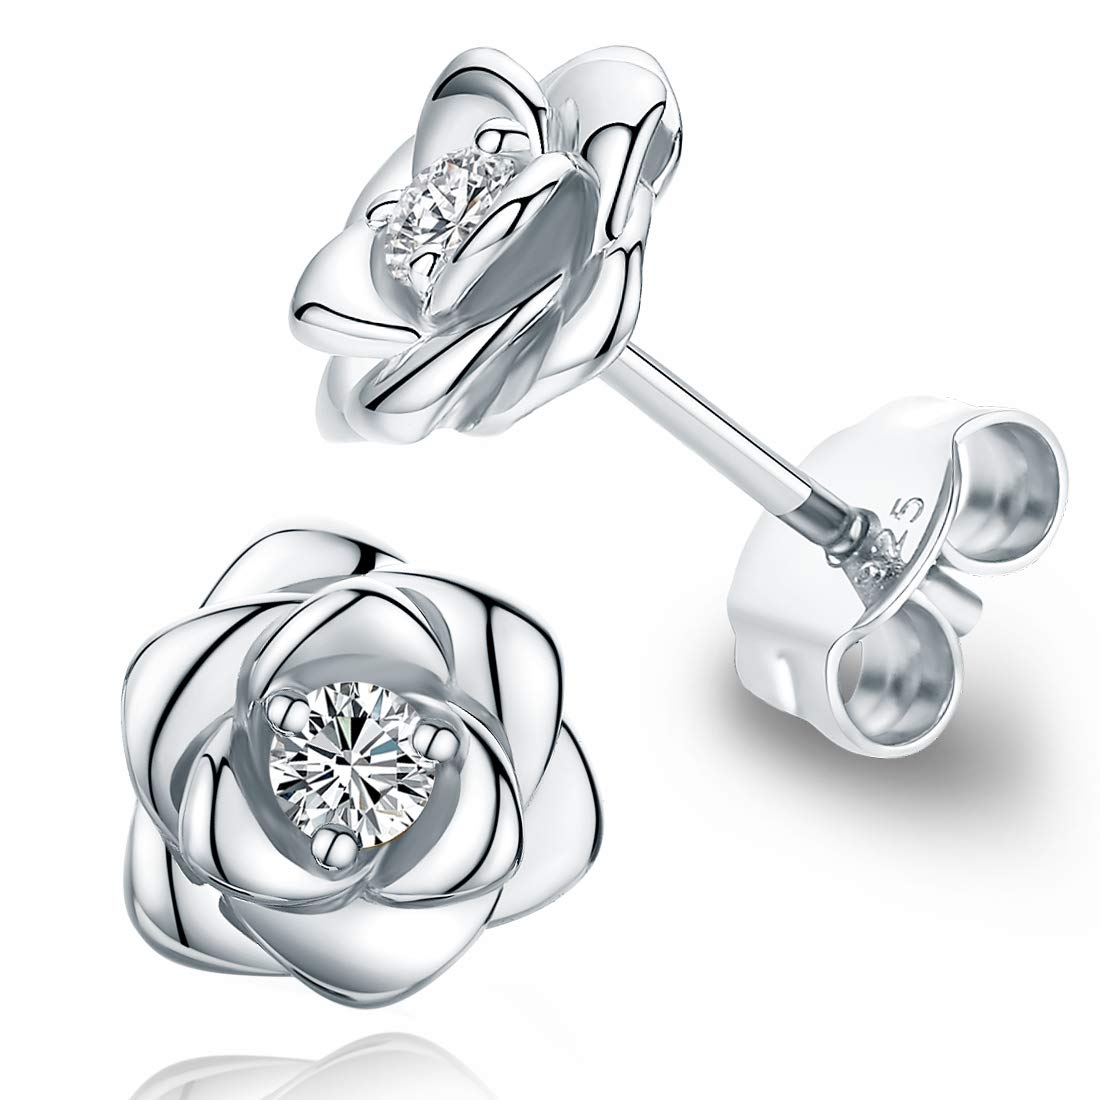 c86d6f05593ff Gold Plated Sterling Silver Rose Flower Ear Studs, Hypoallergenic & Nickel  Free Earrings for Women